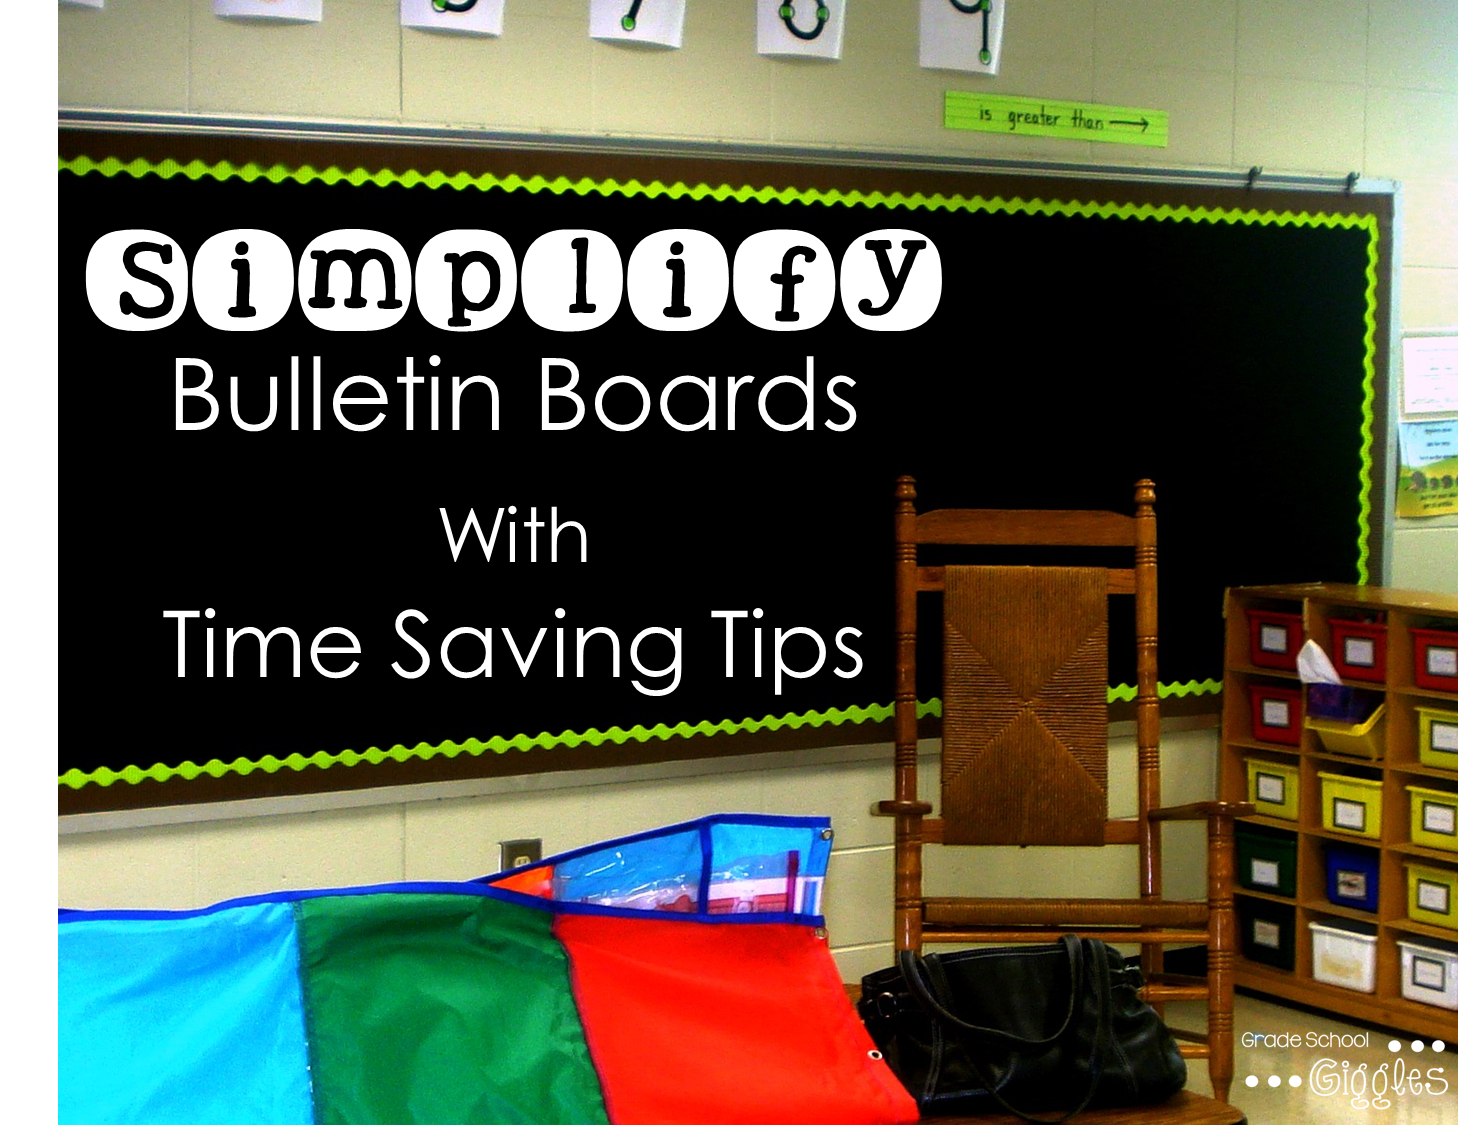 simplify bulletin boards with time saving tips and tricks